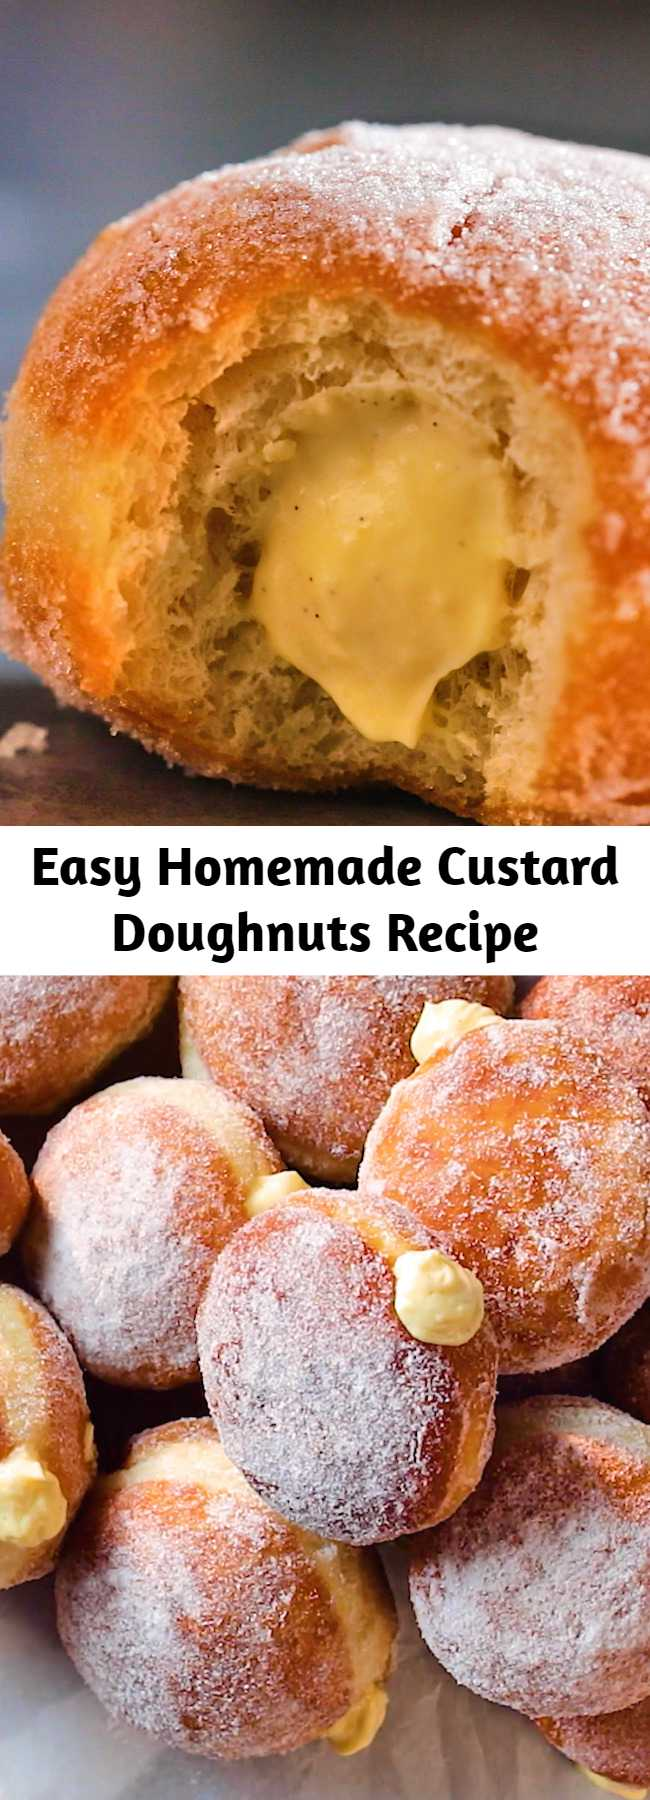 Easy Homemade Custard Doughnuts Recipe